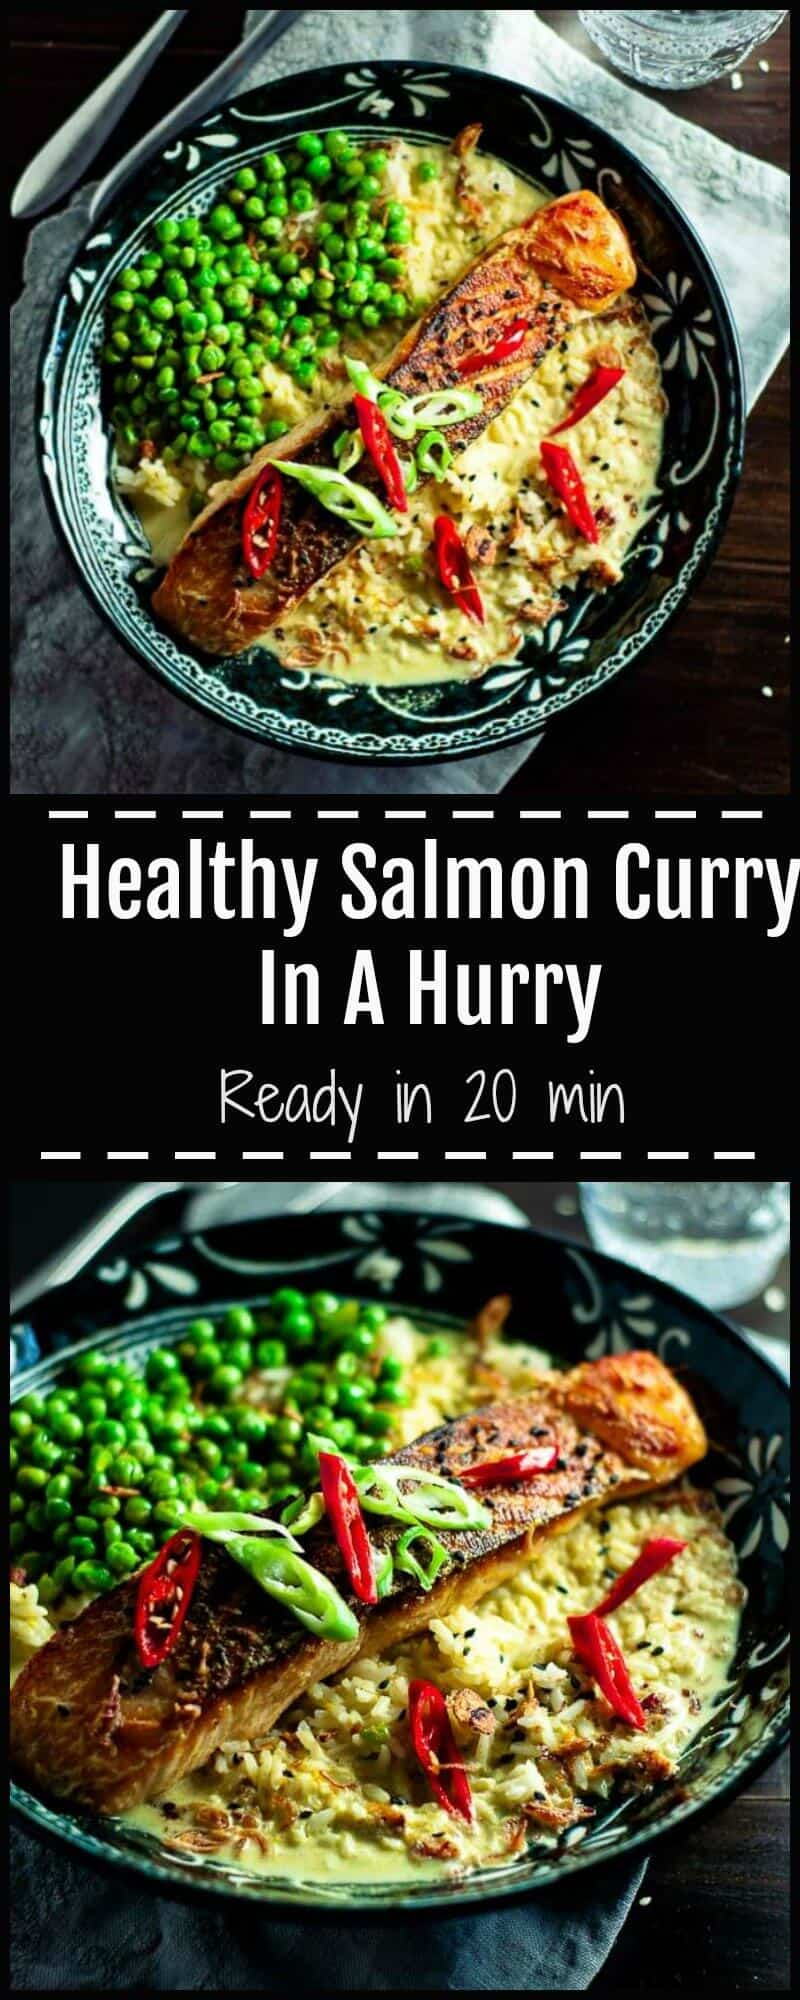 Salmon curry in a hurry is a simple no nonsense dish, perfect for midweek dinners, packed with heart healthy crispy skin salmon, rich creamy curry sauce and crunchy fried shallots, sesame seeds, and sweet juicy green peas.